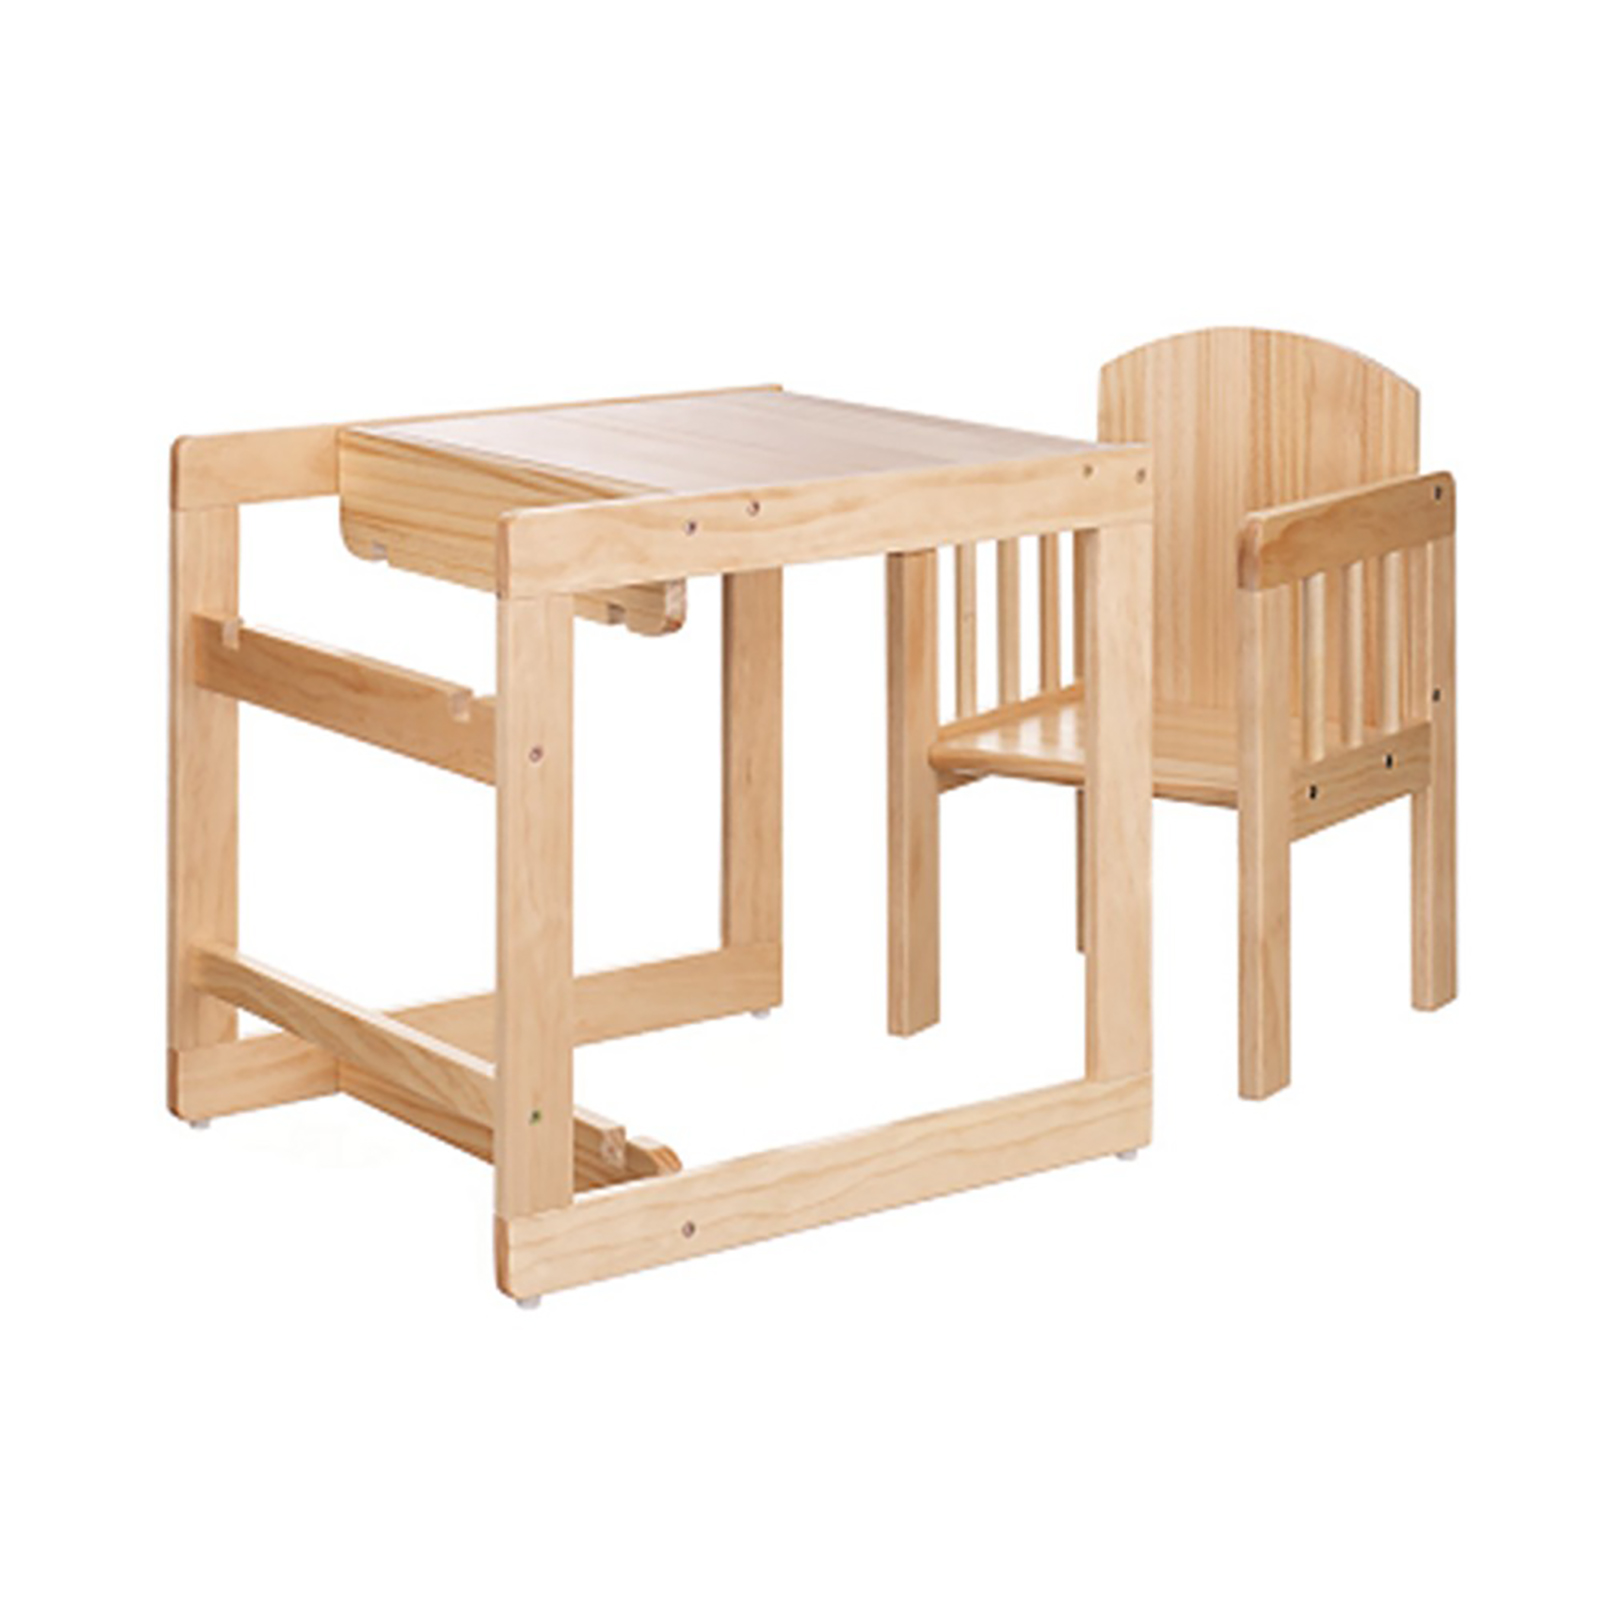 chairs buyeast at lewis rsp johnlewis online highchair east high com coast combination chair pdp main john wooden